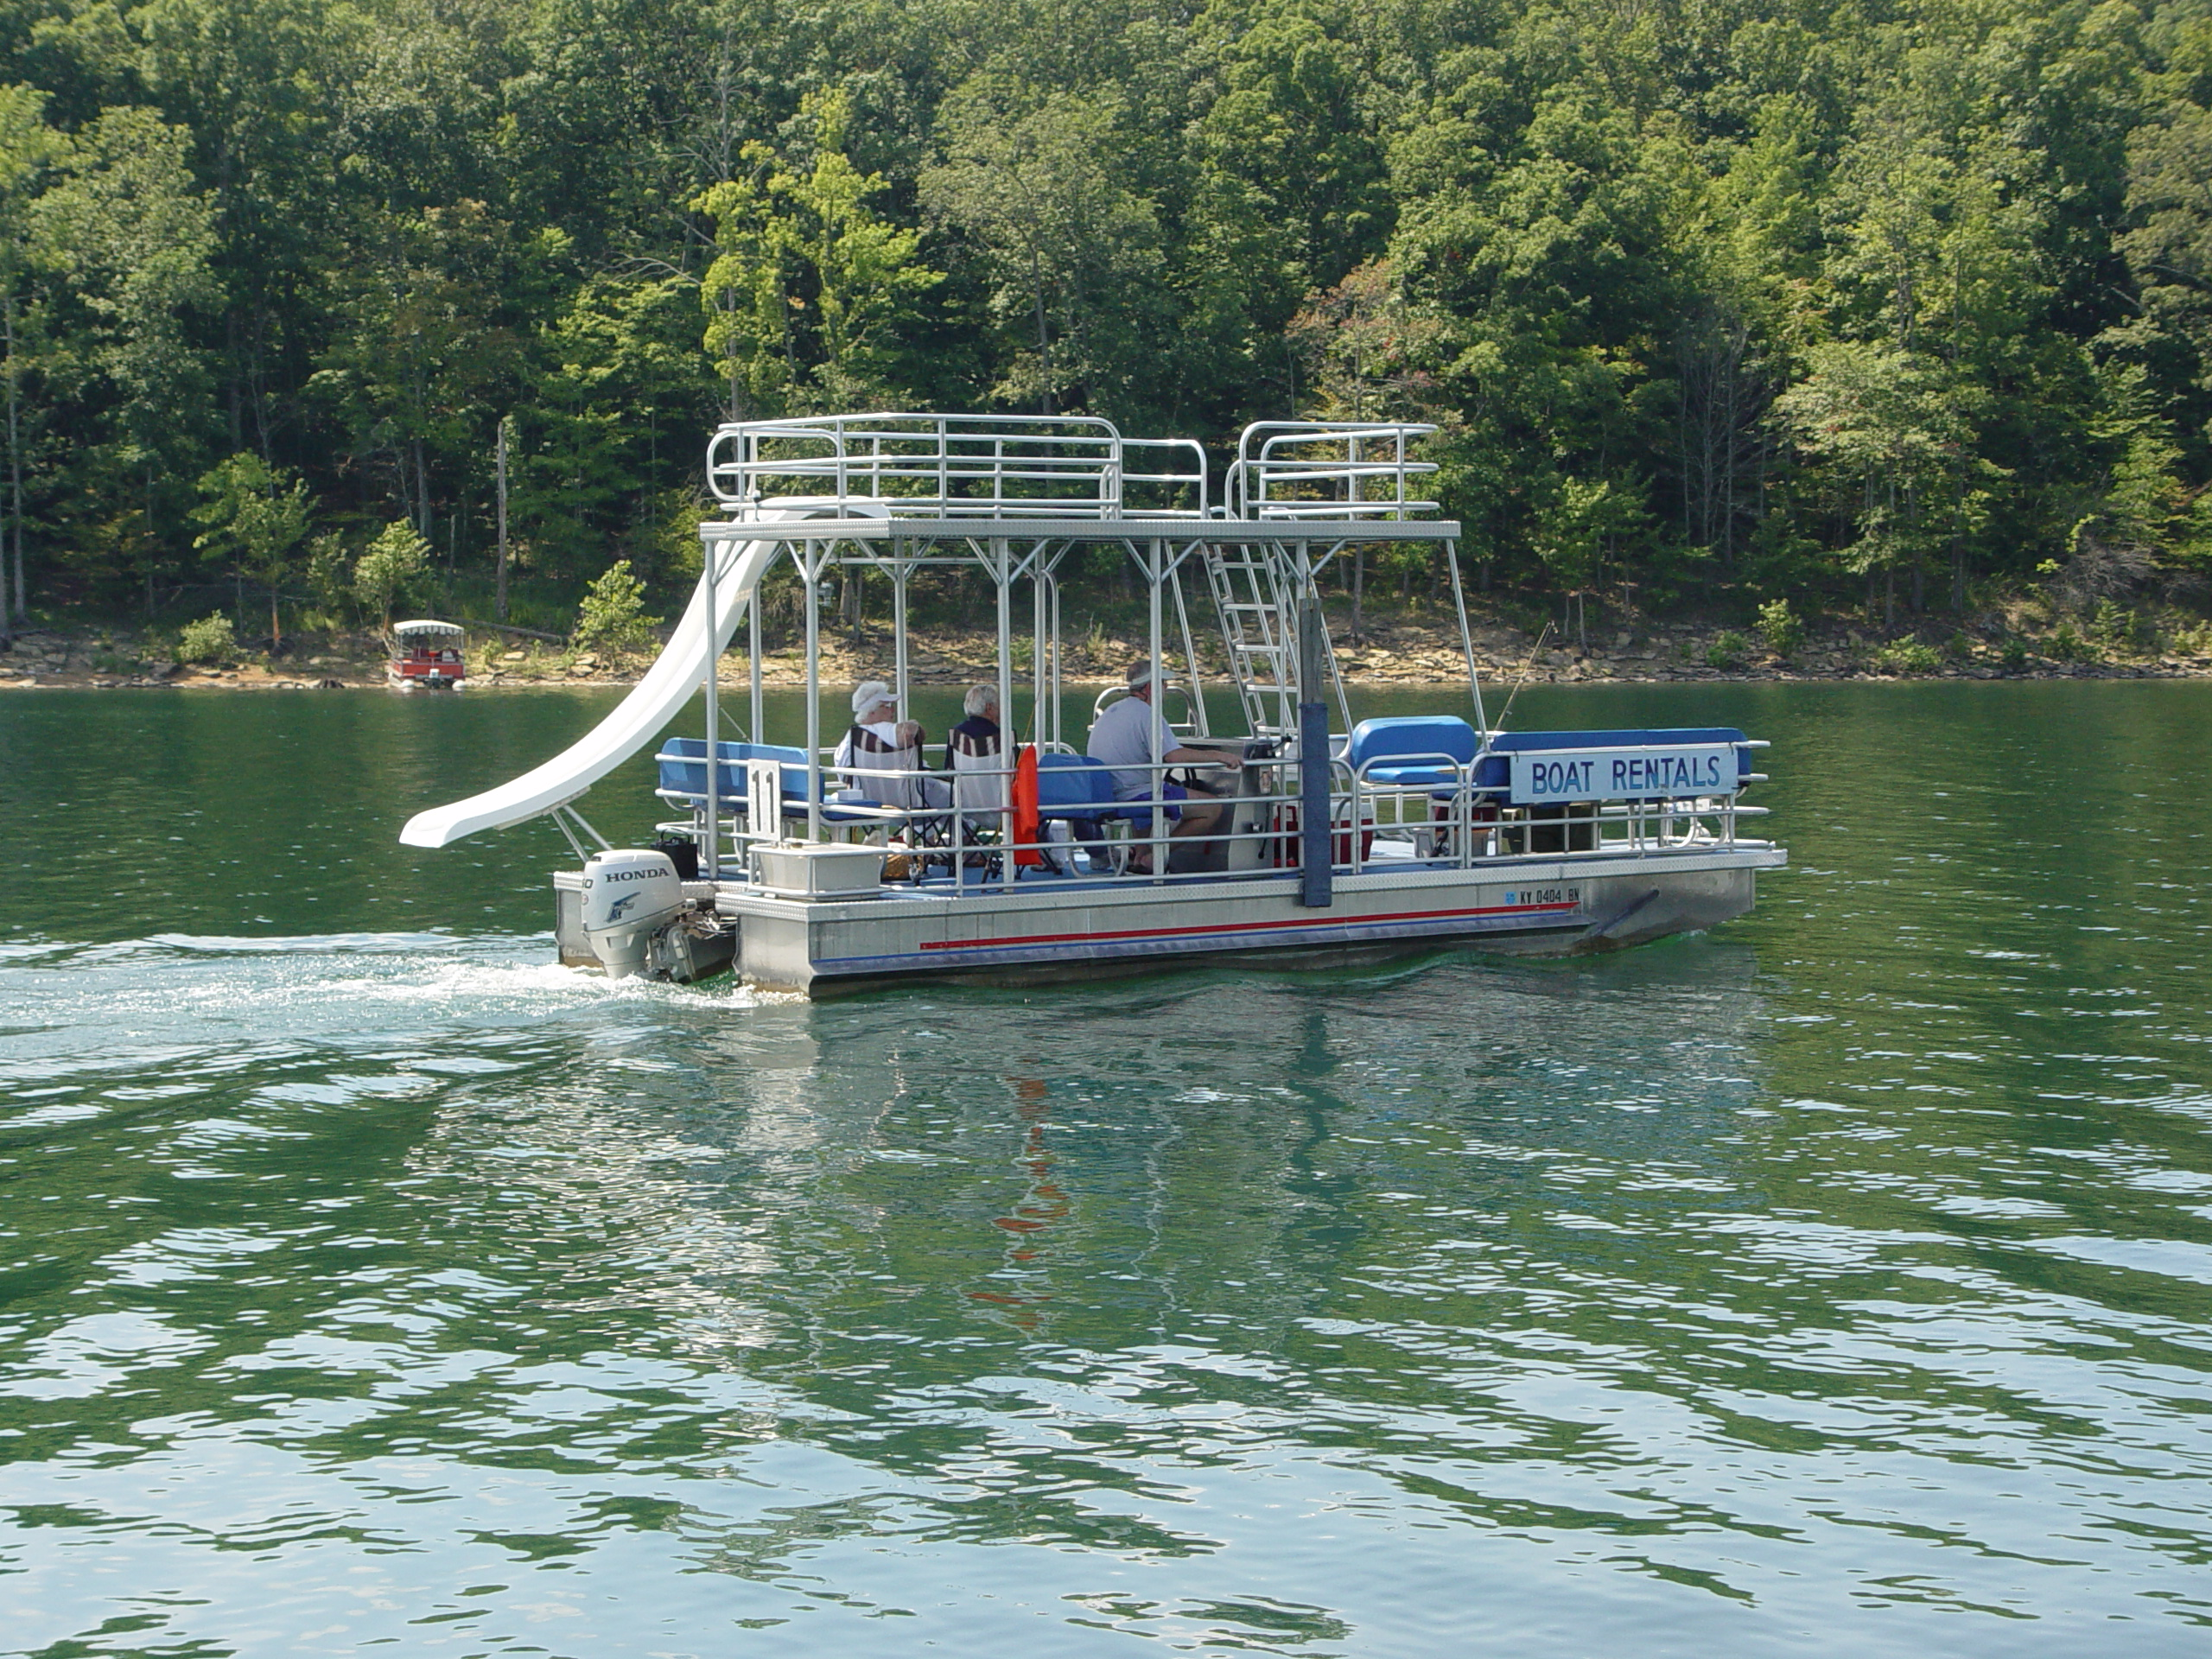 Lake Cumberland State Dock | America's Best Houseboat Vacations!